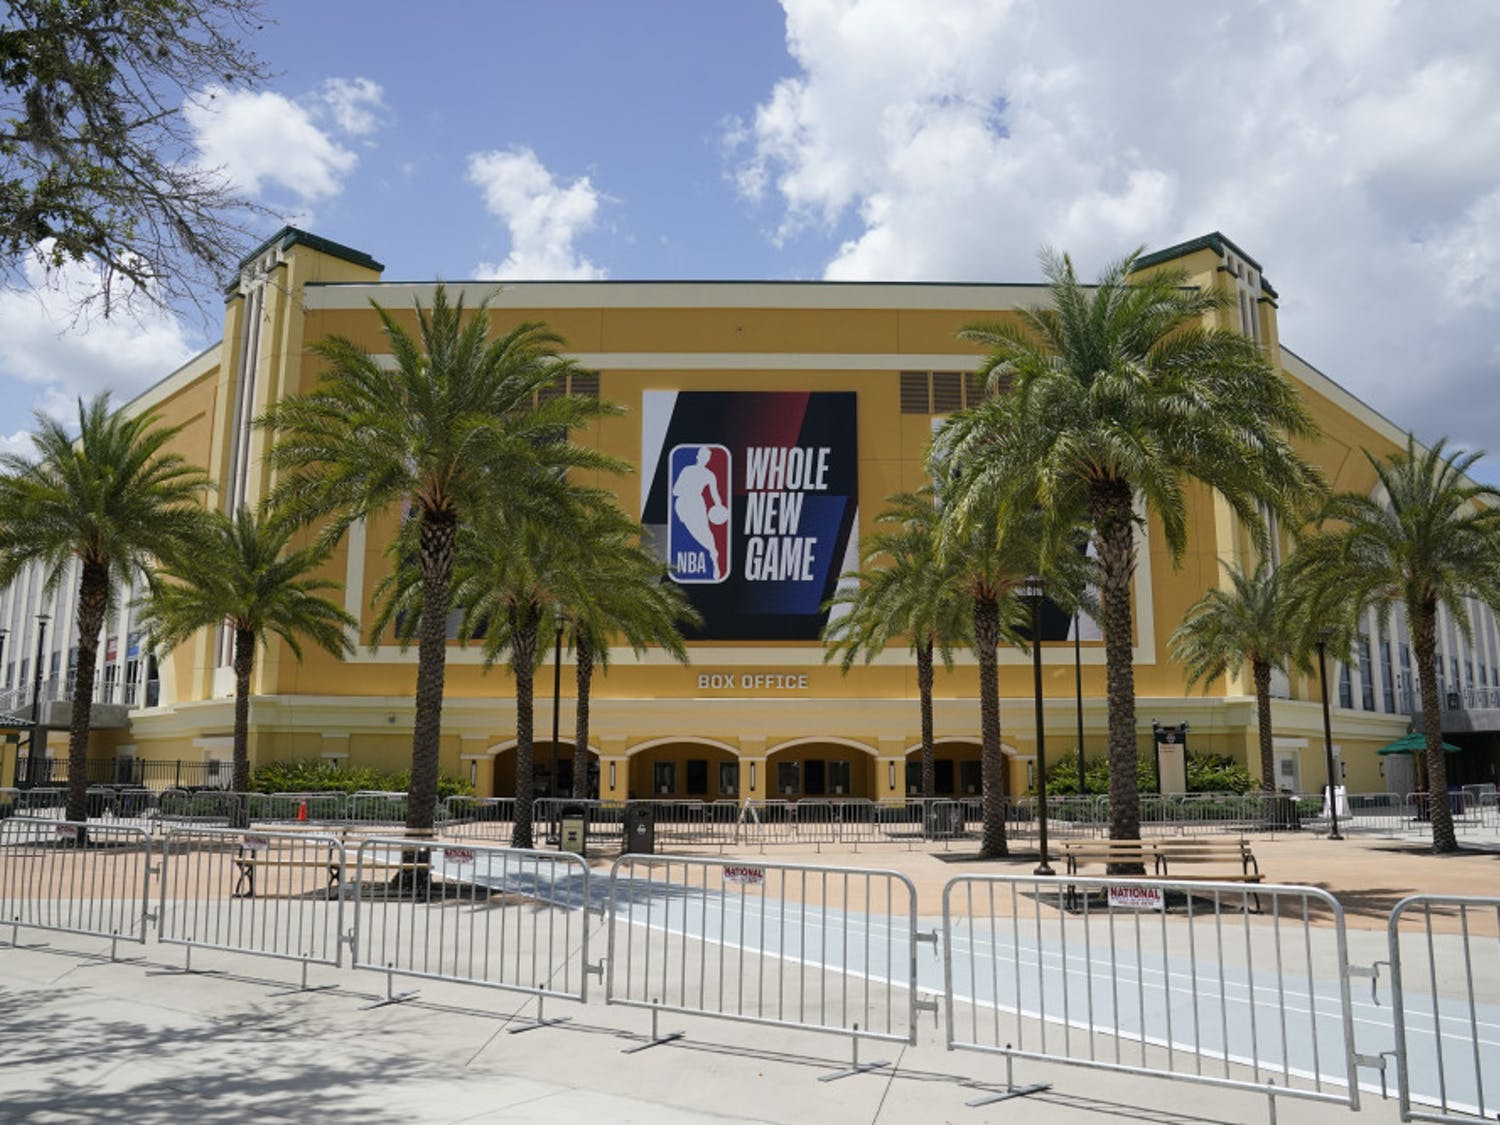 An NBA sign is posted on a basketball arena at ESPN Wide World of Sports Complex Wednesday, July 29, 2020, in Orlando, Fla. NBA games will resume Thursday. (AP Photo/Ashley Landis)